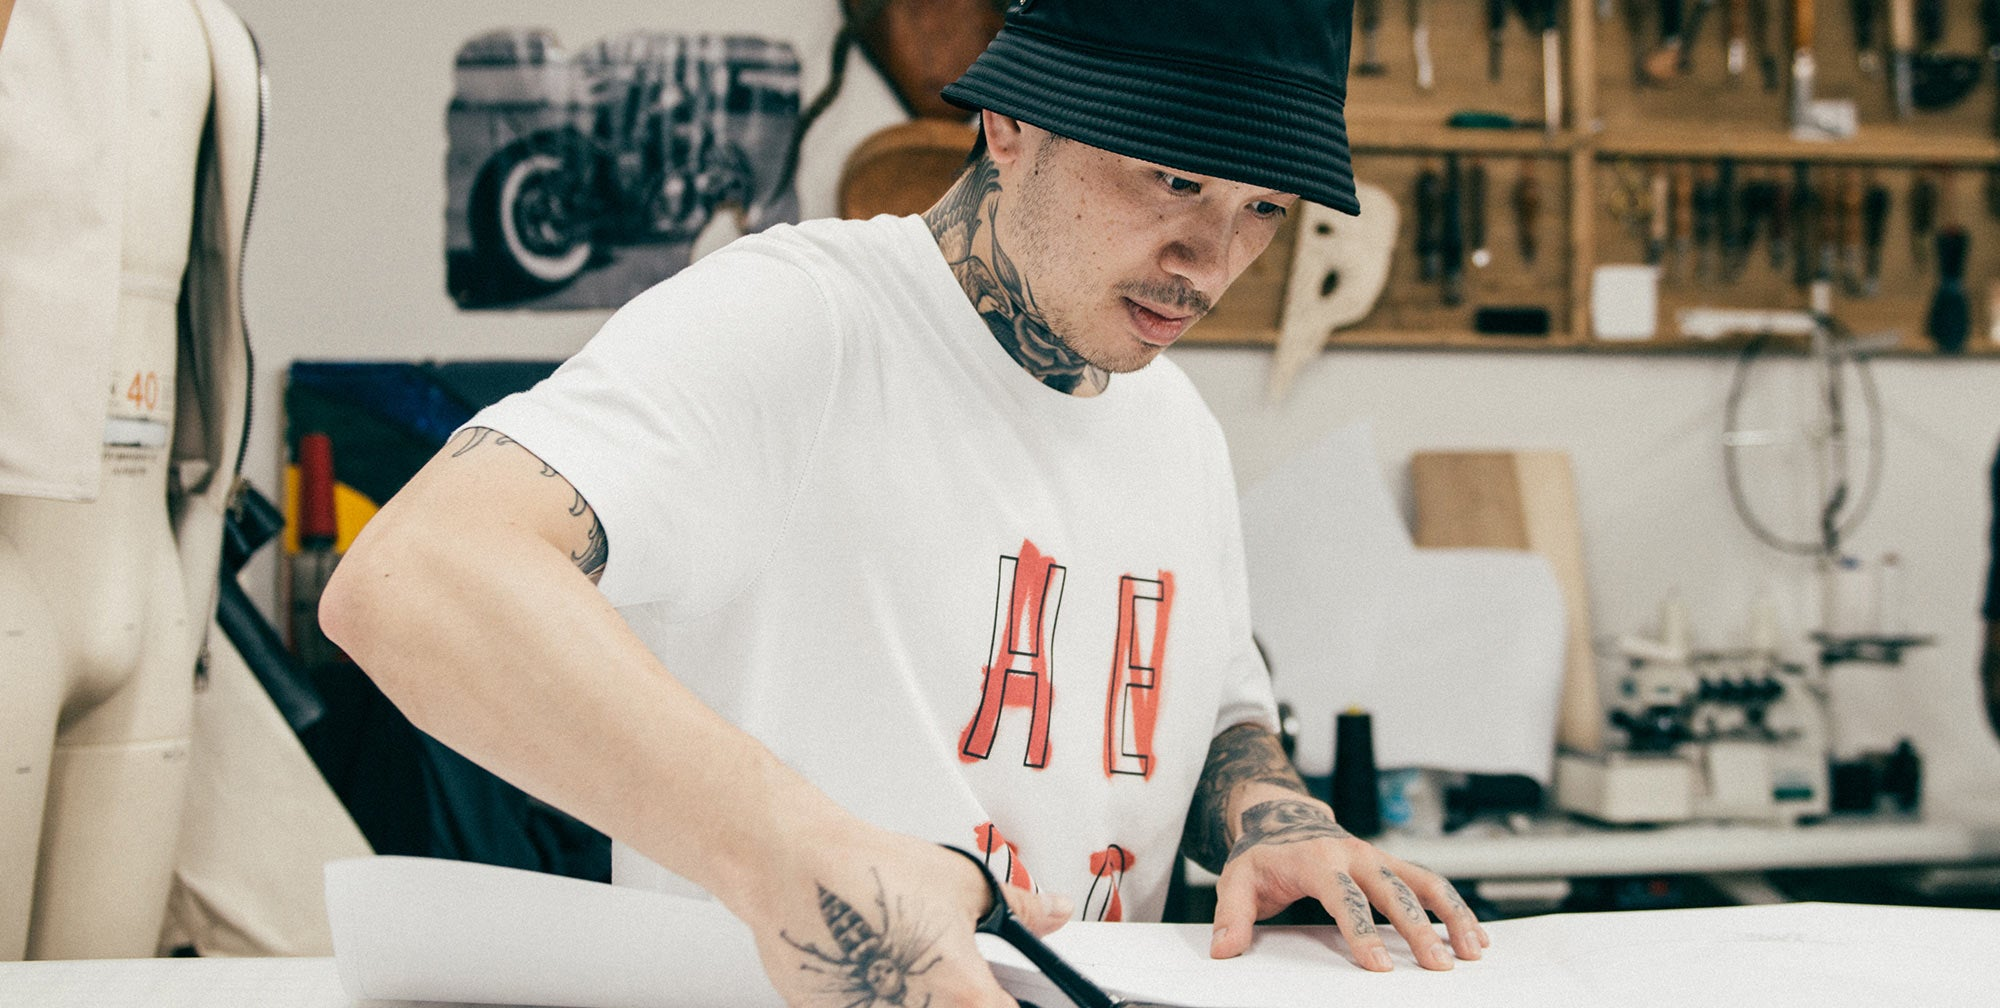 New York Designer Kenneth Ning for A Day in The Life Series - ONS Clothing Urban Transplants